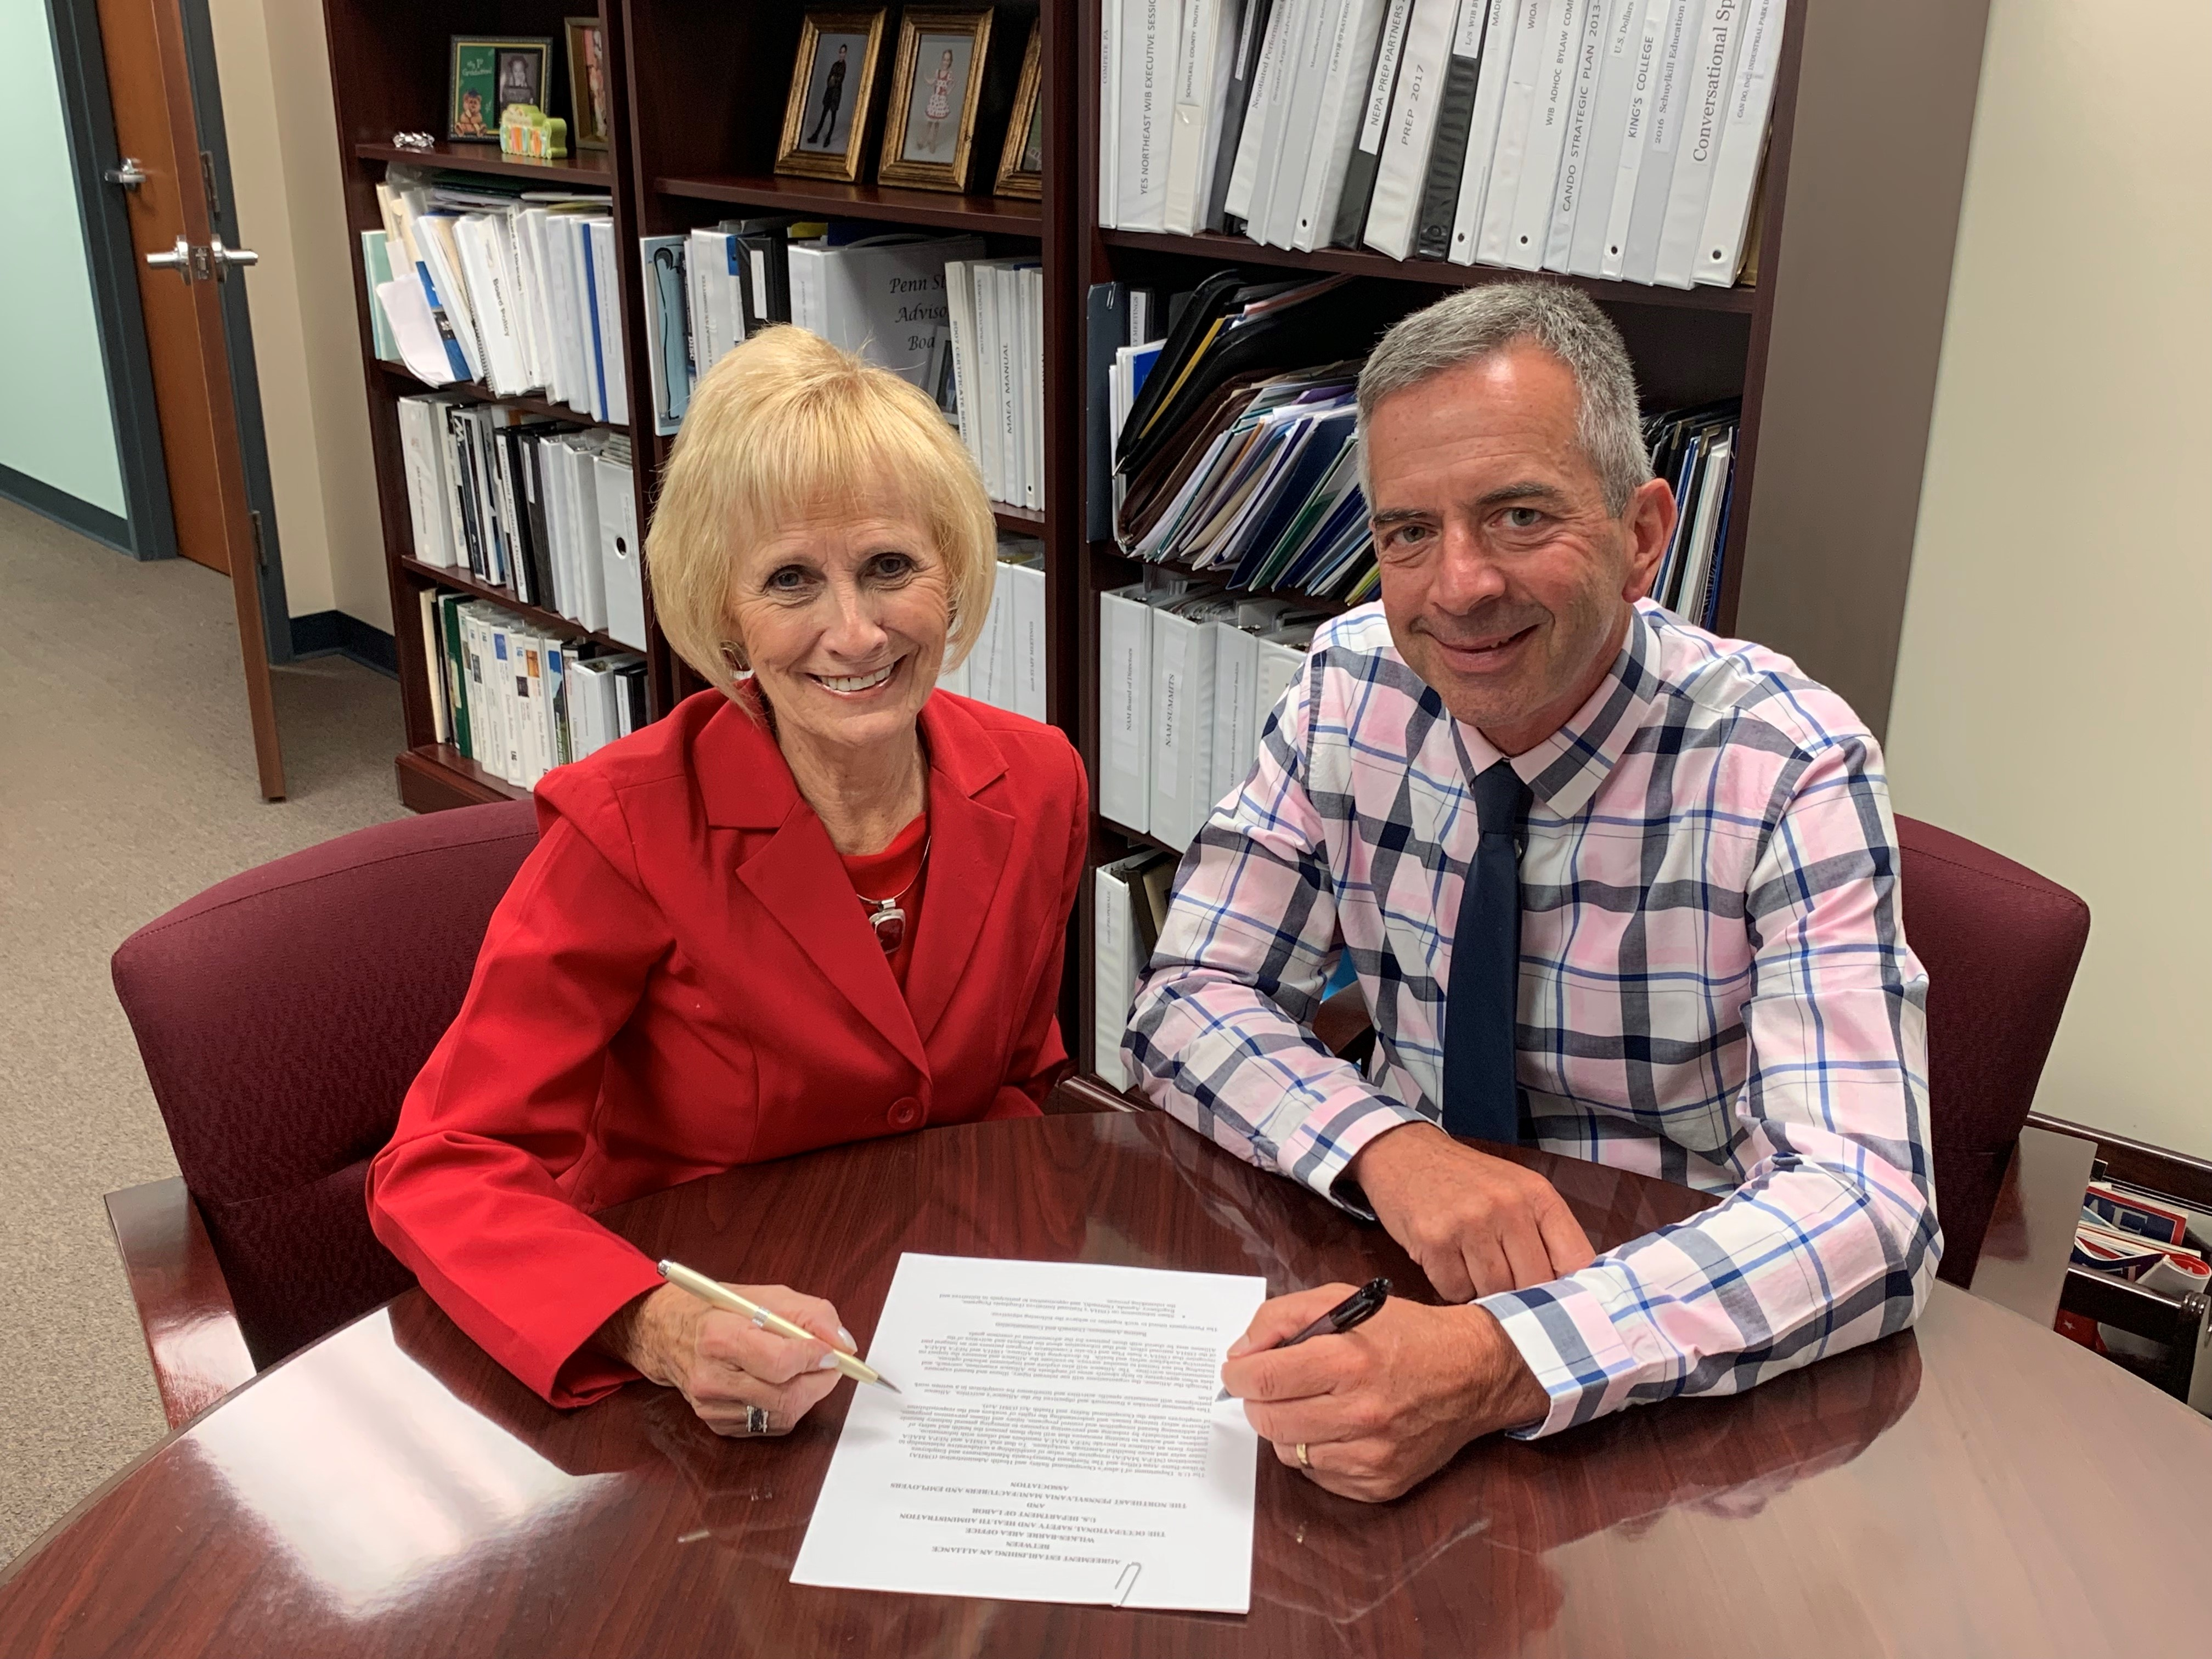 Mark Stelmack, Area Director, DOL-OSHA Wilkes-Barre Area Office and Darlene Robbins, President, NPMEA sign the alliance agreement on August 15, 2019.